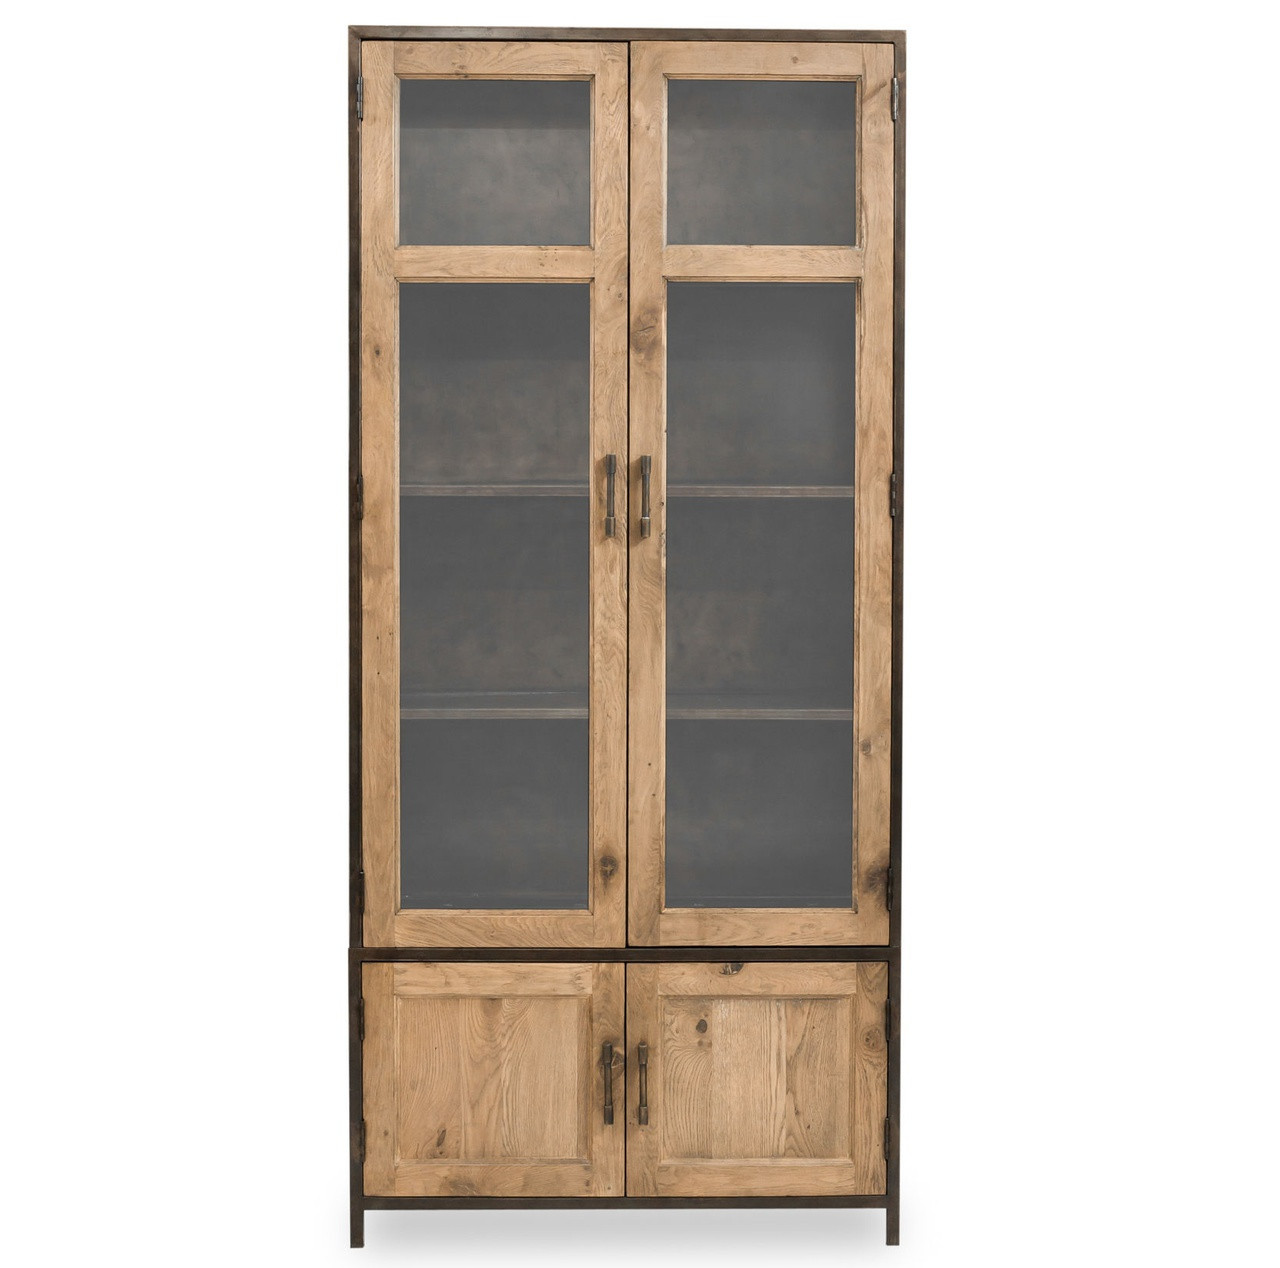 Dominic Industrial Metal + Oak Tall Cabinet with Glass ...